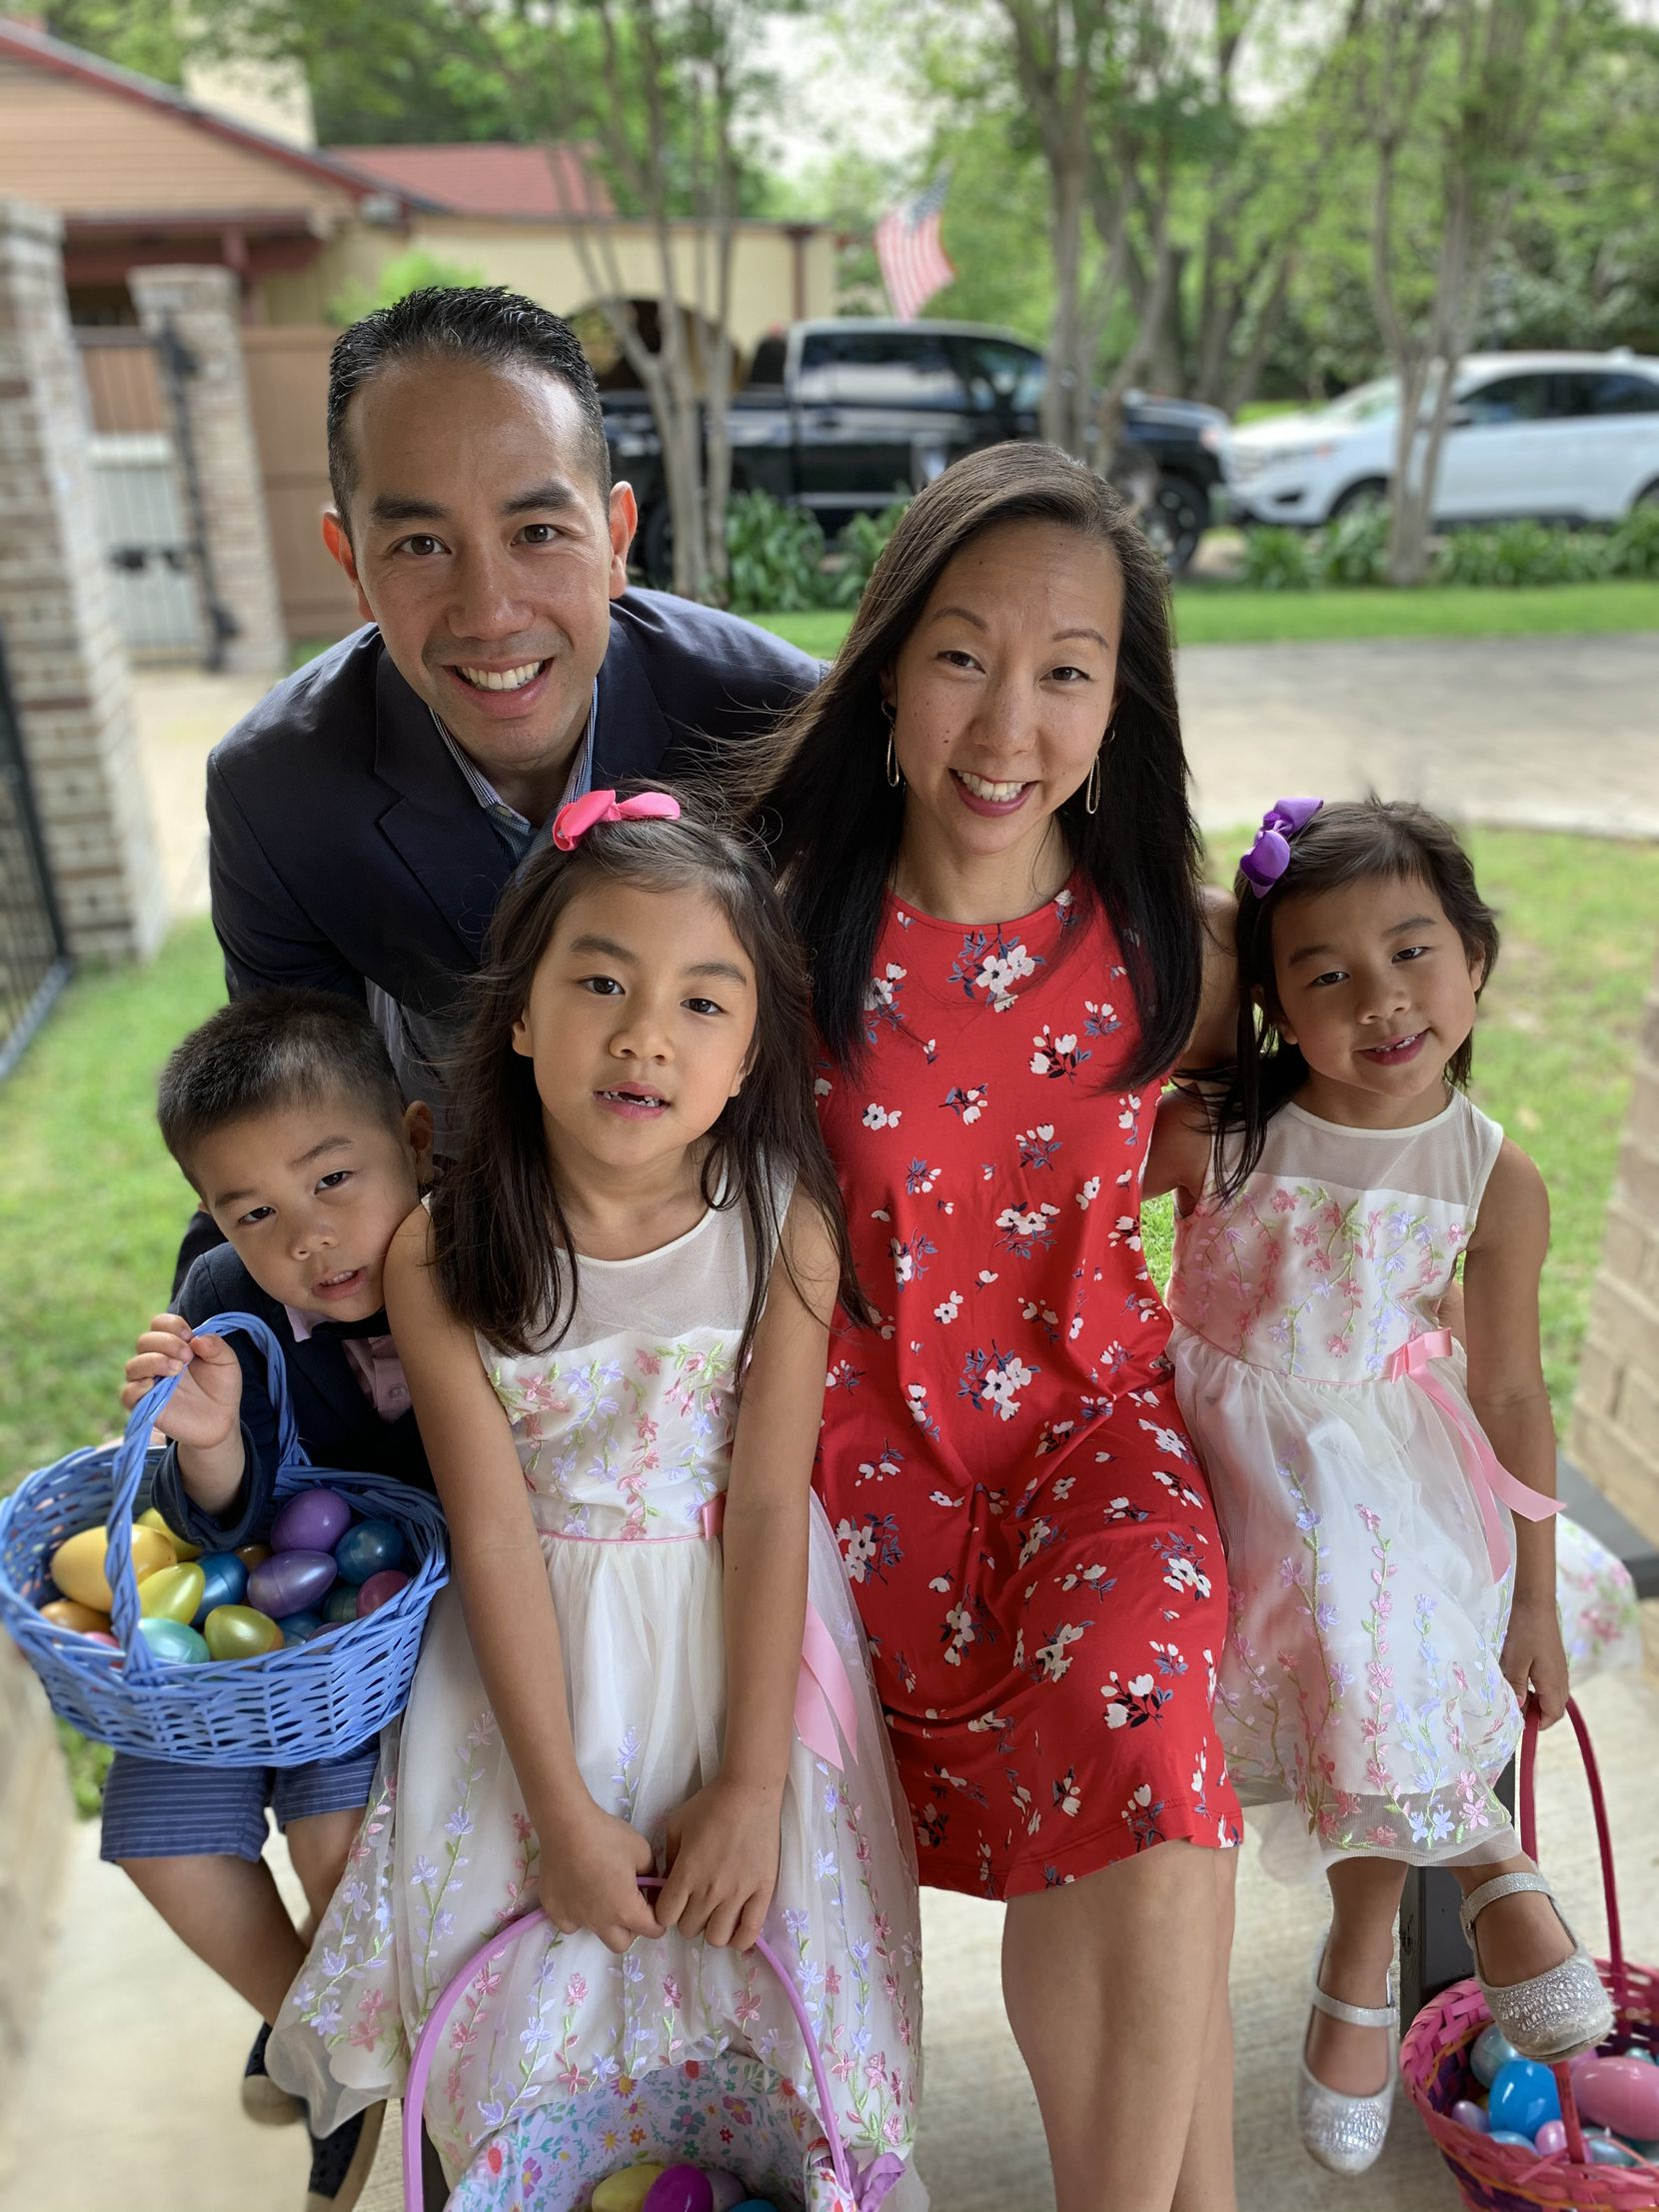 Lisa and Jimmy Tran with their children Lila (center), 8, Livia (right), 6, and Jordan, 4, at their home in Dallas on April 12, 2020.